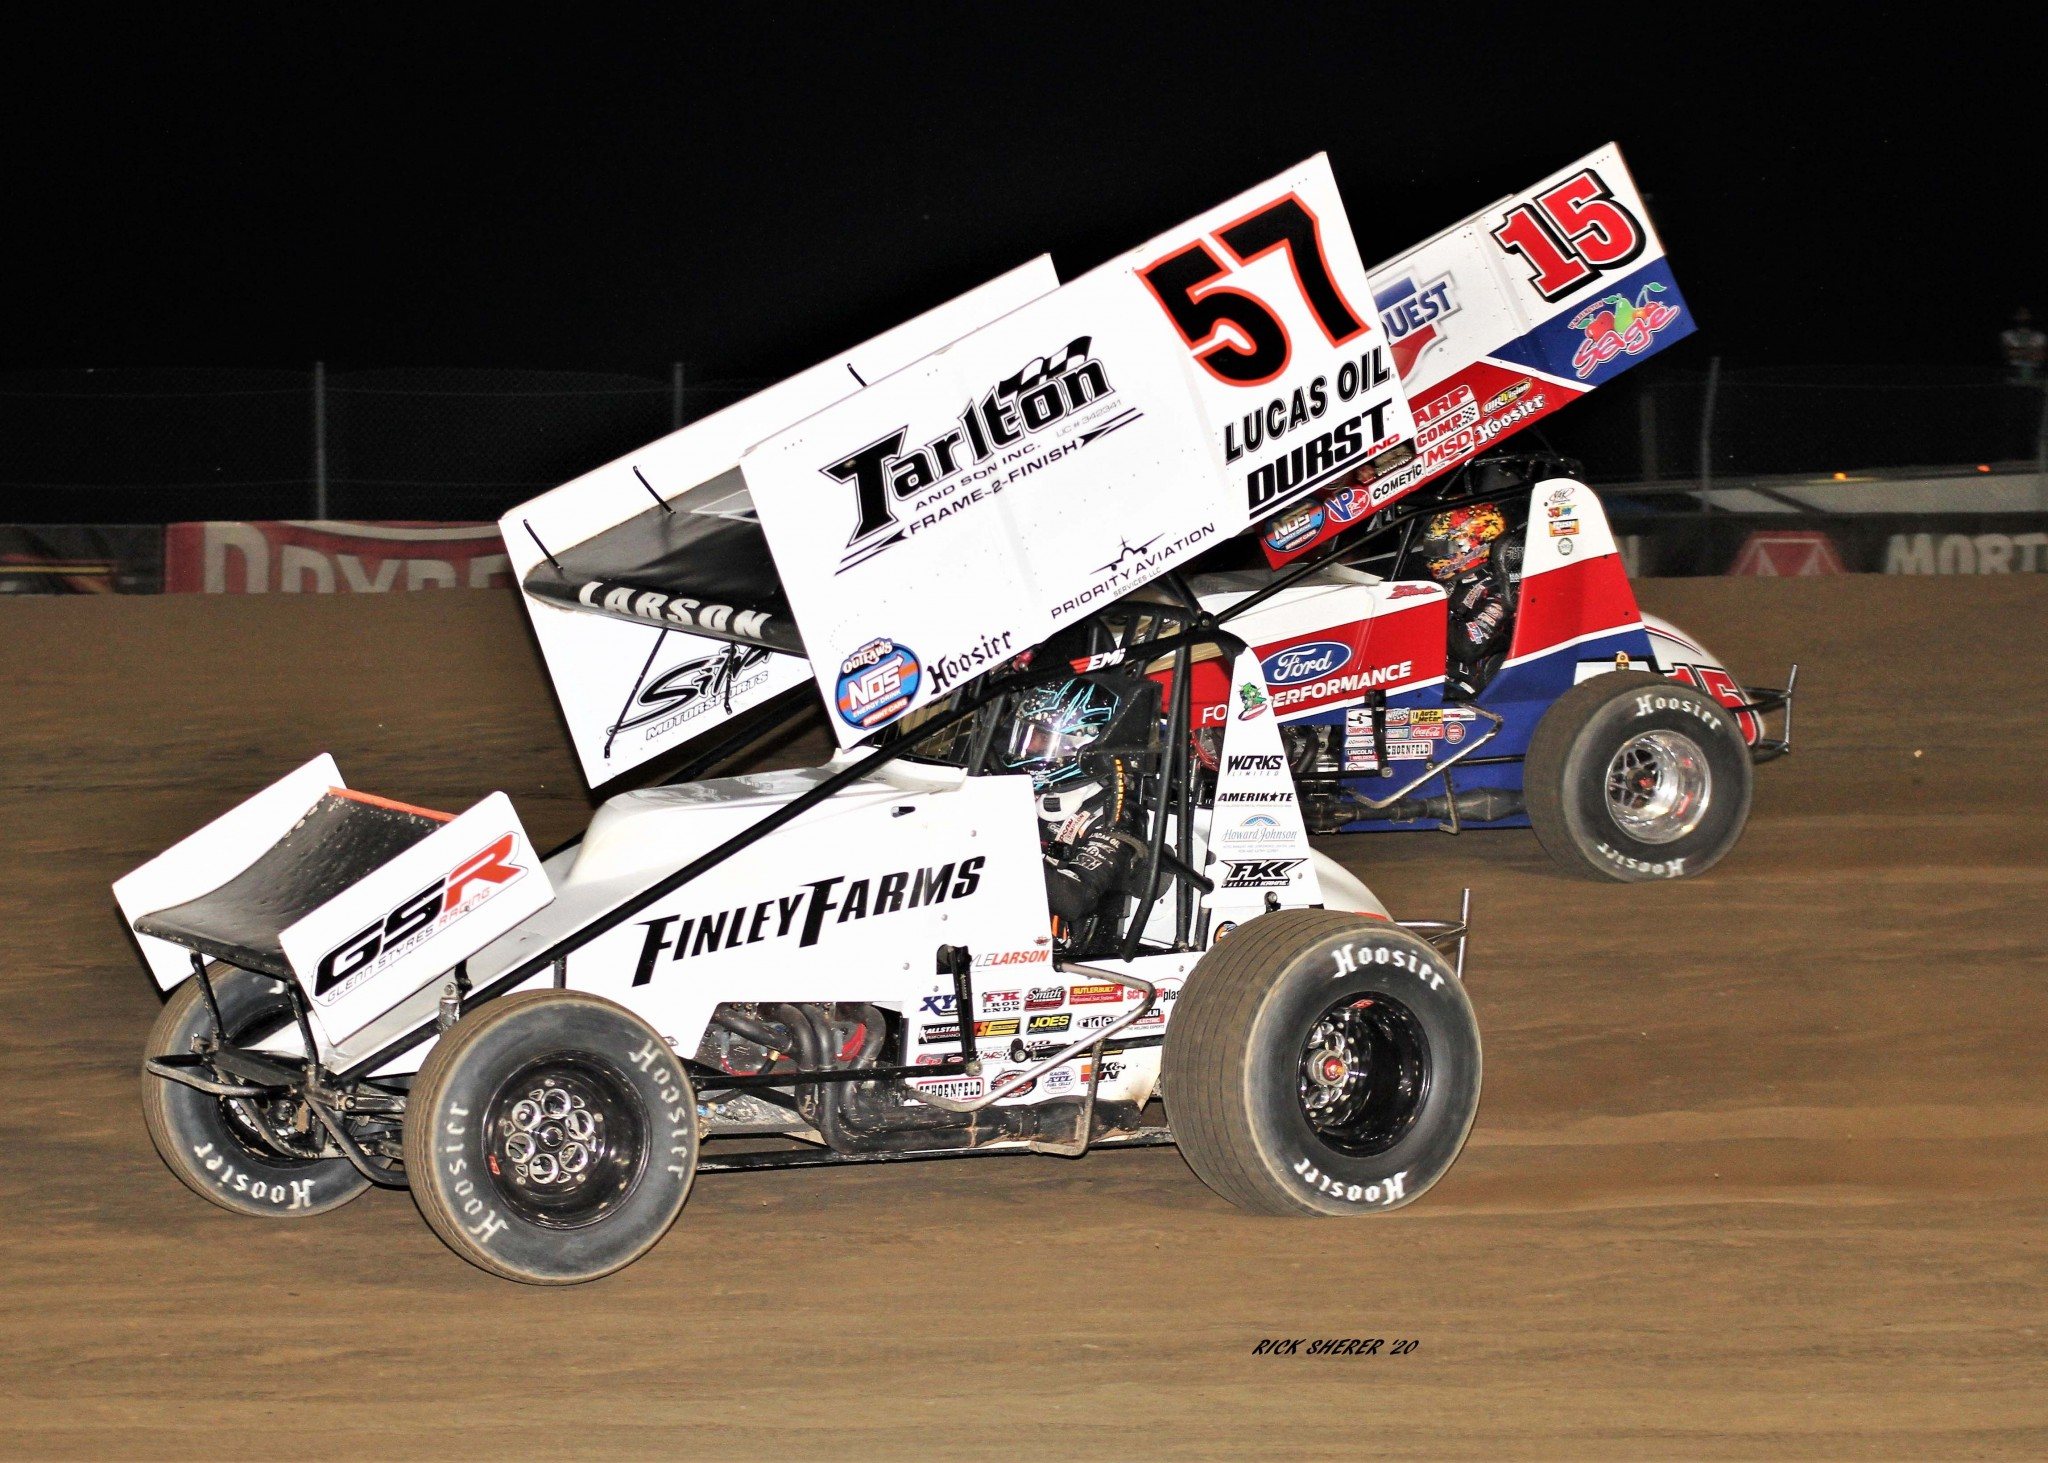 Kyle Larson (57) stayed a few steps ahead of many-time World of Outlaws champ Donny Schatz (15) and went on to win prestigious World of Outlaws Brad Doty Classic feature at Attica Raceway Park. Schatz was second. (Photo by Rick Sherer)